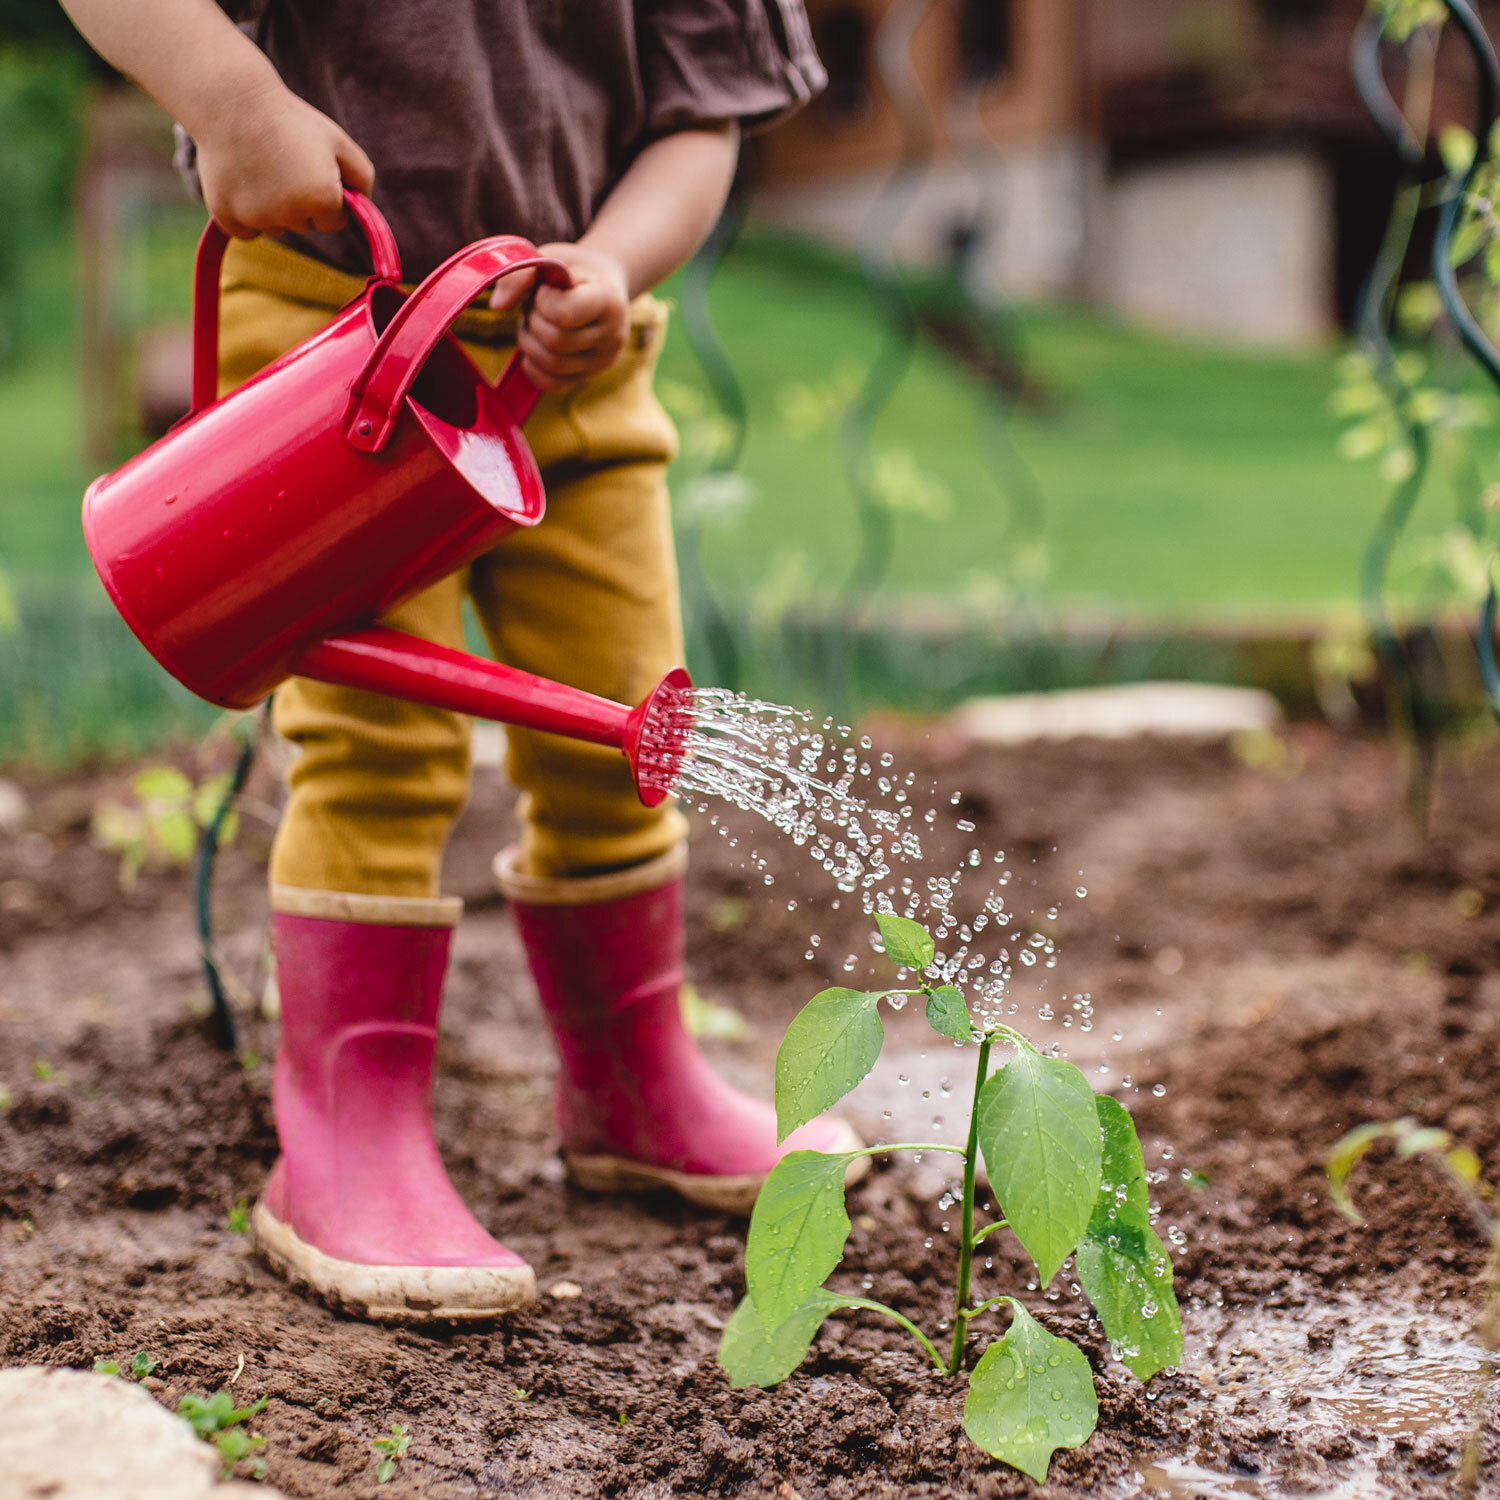 Photo of kids legs in red rain boots, holding a red watering can, watering a garden.